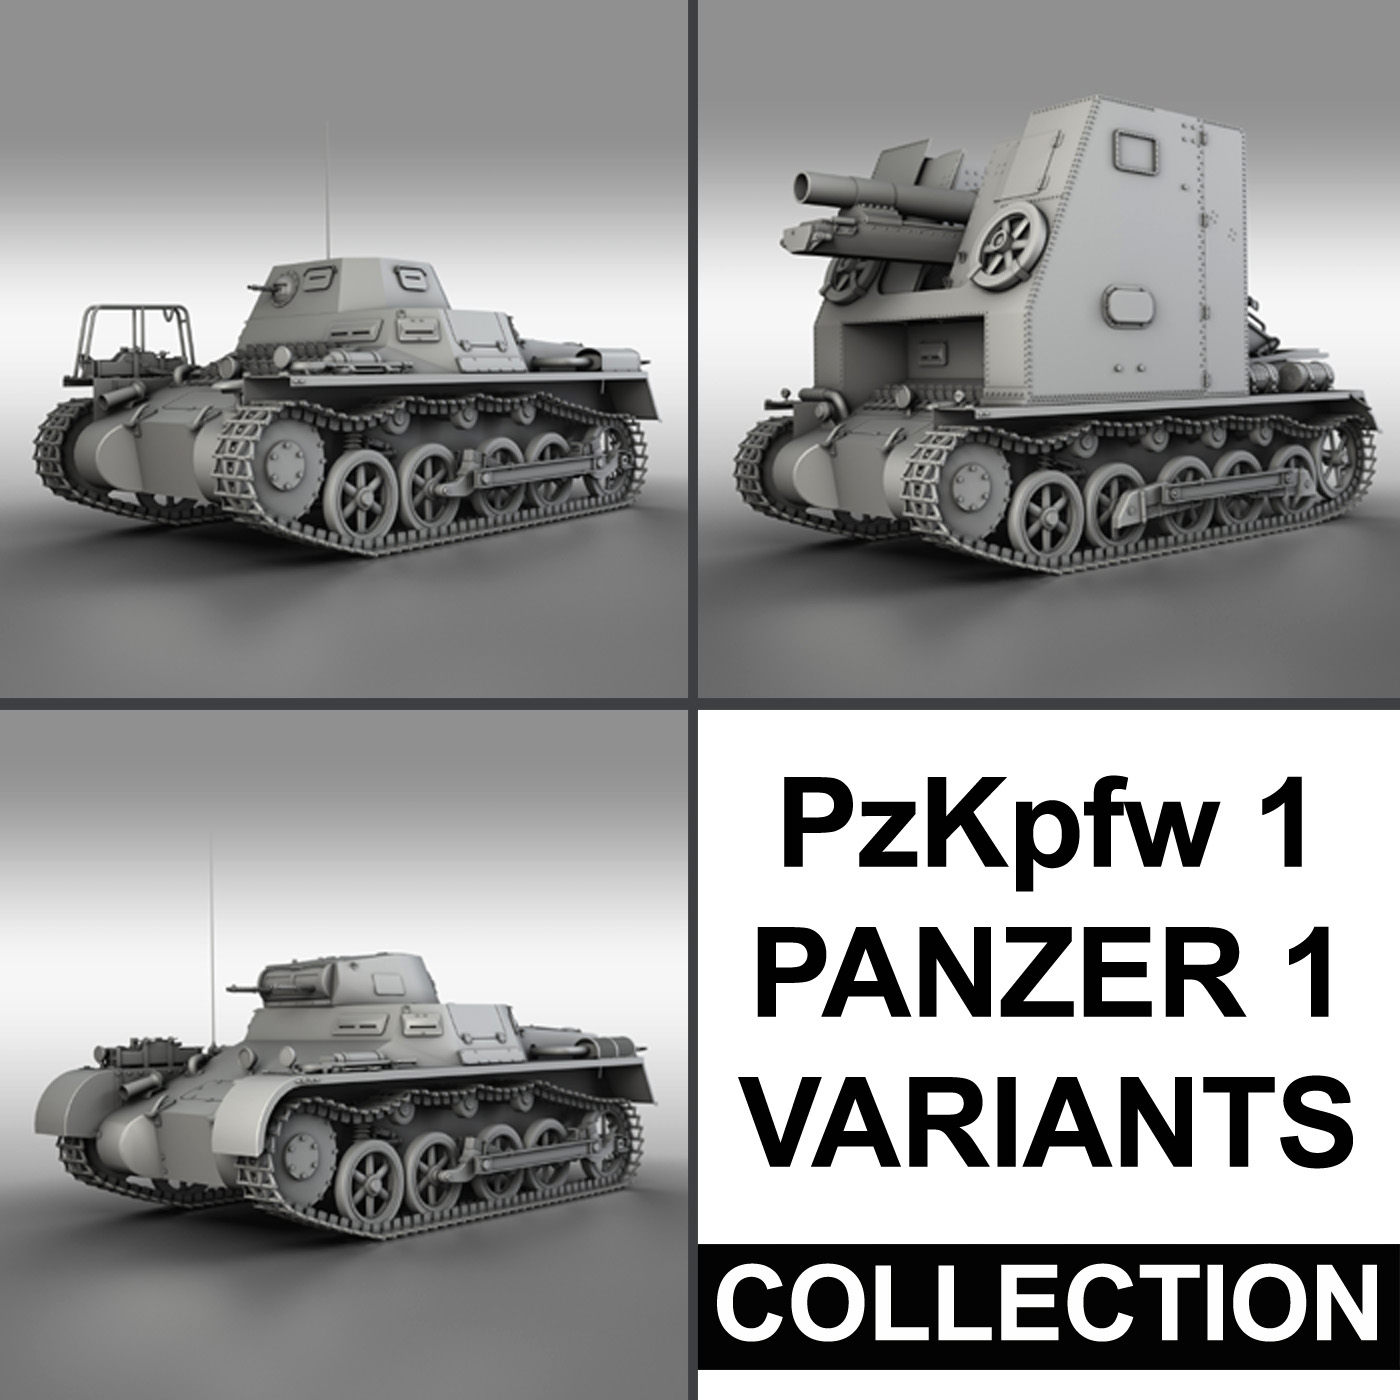 panzerkampfwagen 1 – panzer 1 collection 3d model 3ds fbx c4d lwo obj 189336